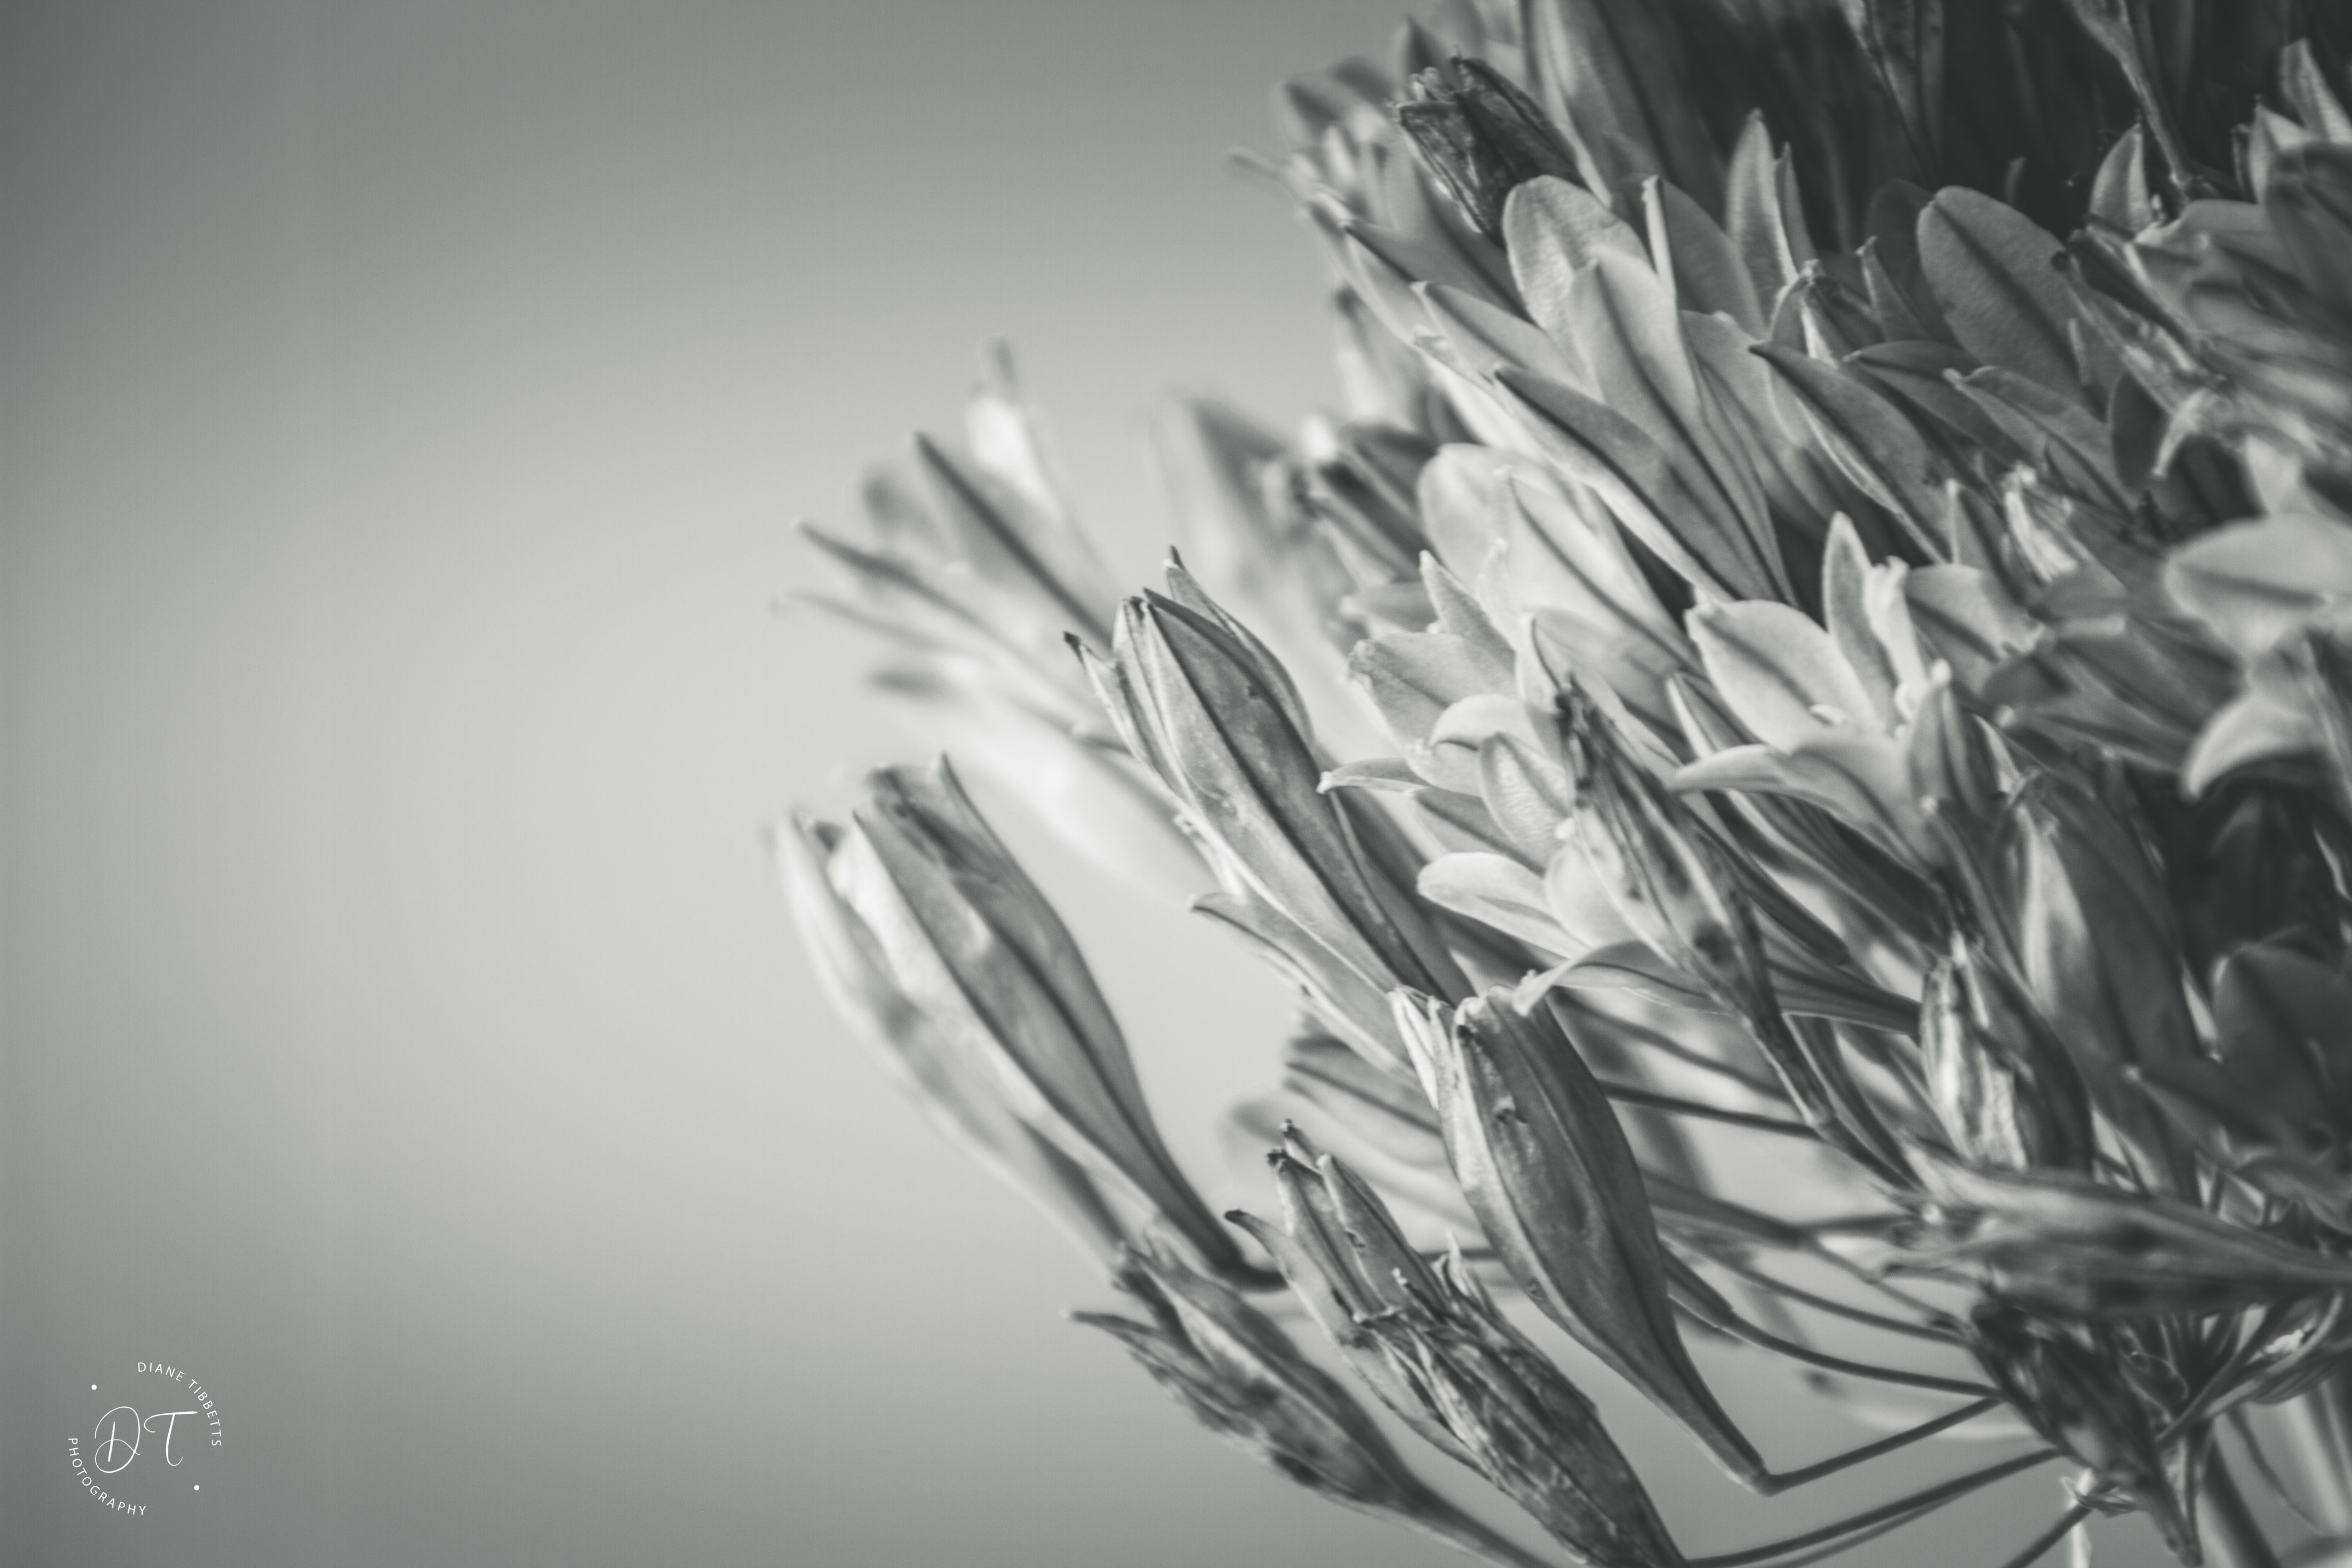 #wildflowers #blackandwhitephotography